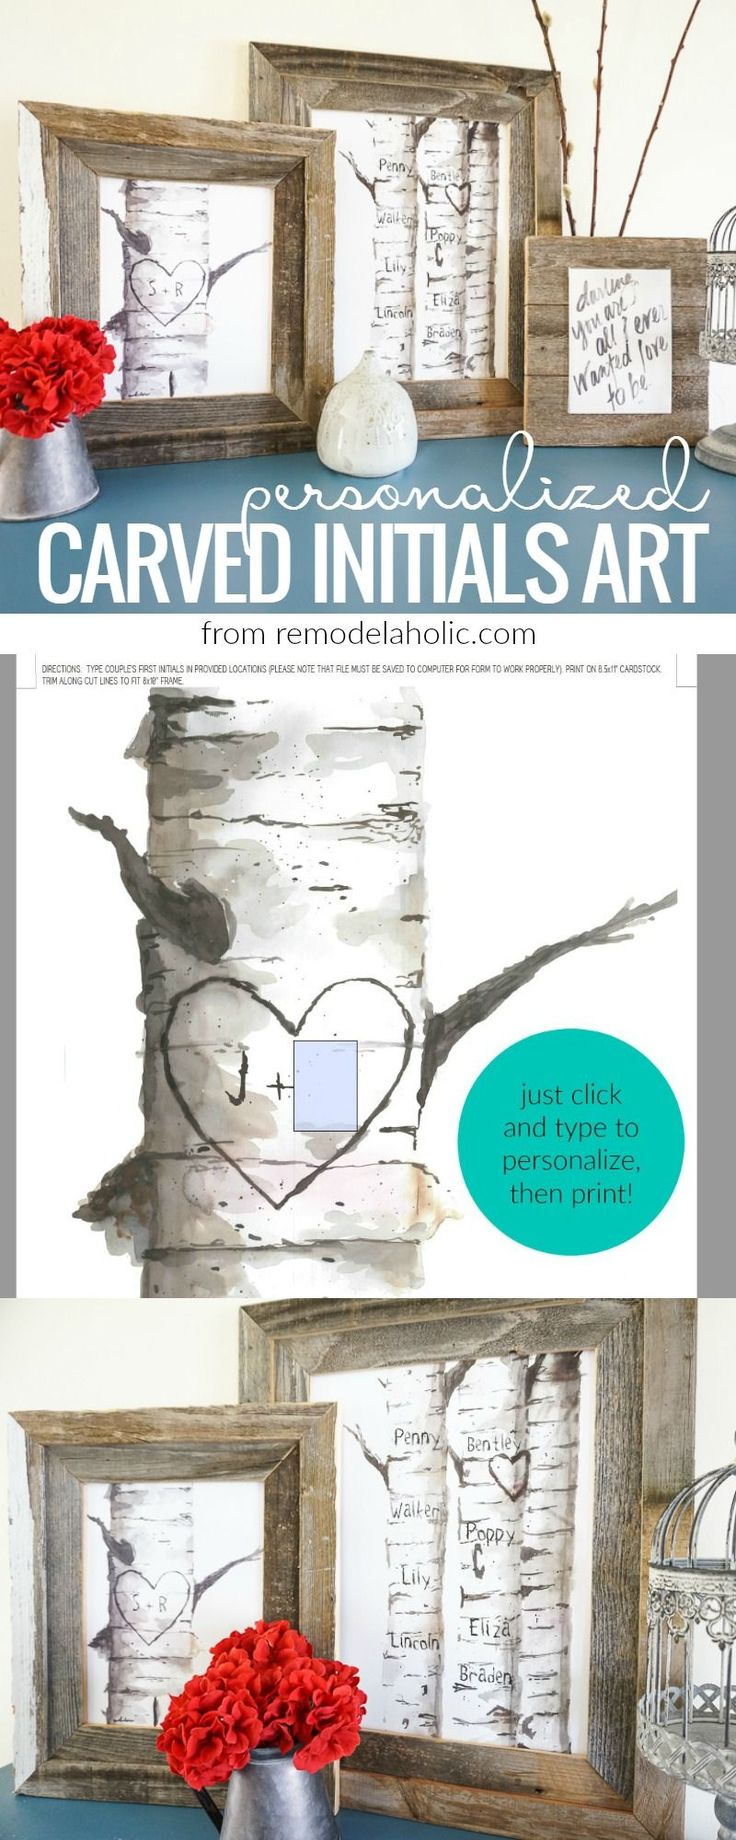 Decorate for winter and lovey-dovey Valentine's Day *without* the pink and purple with this beautiful set of free printable personalized birch tree art prints, with custom carved initials and names, from Remodelaholic.com.